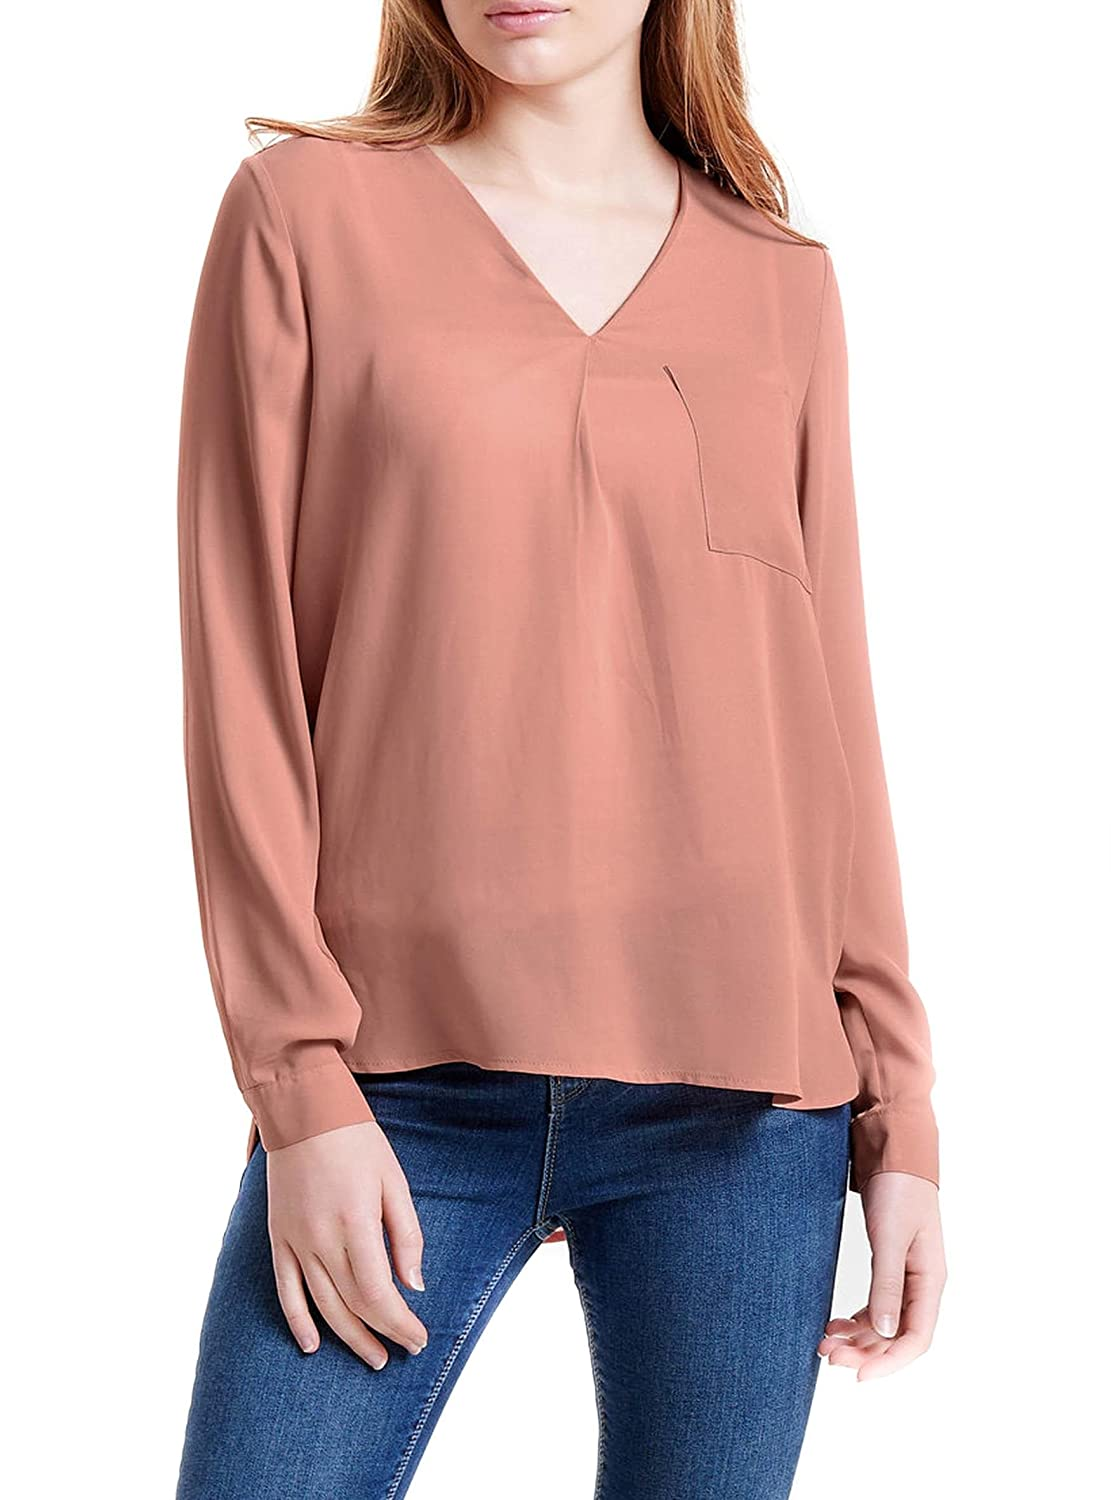 Only Stubailey L/S V-Neck Shirt Blusa para Mujer